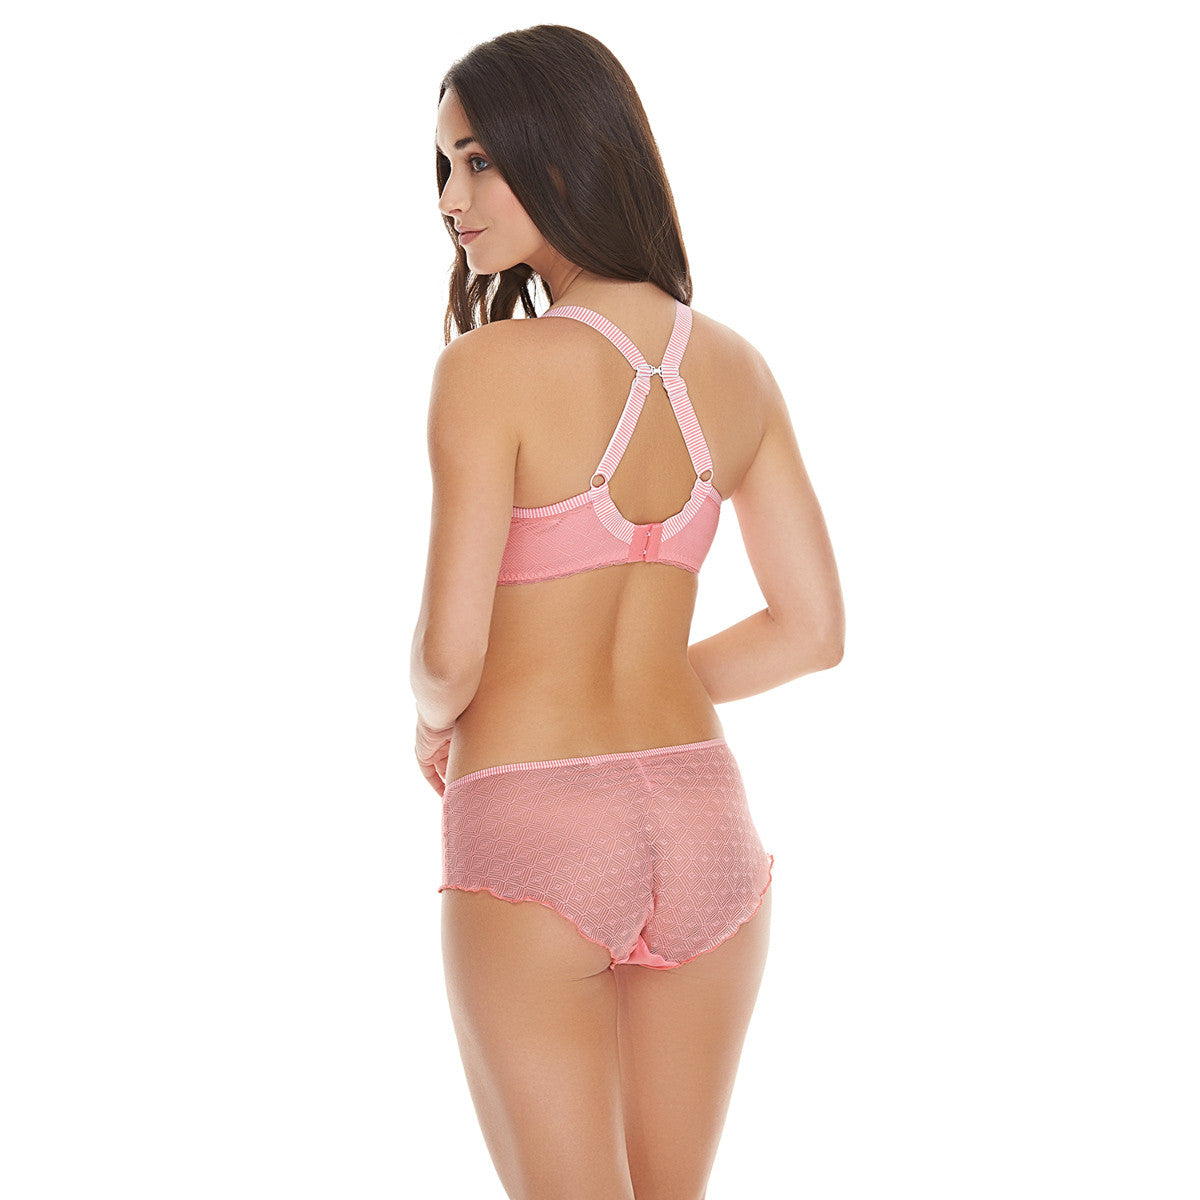 7f15a2b02e Freya Deco Vibe Candy Pink Plunge Bra - 1704CAY - PoinsettiaStyle.co.uk